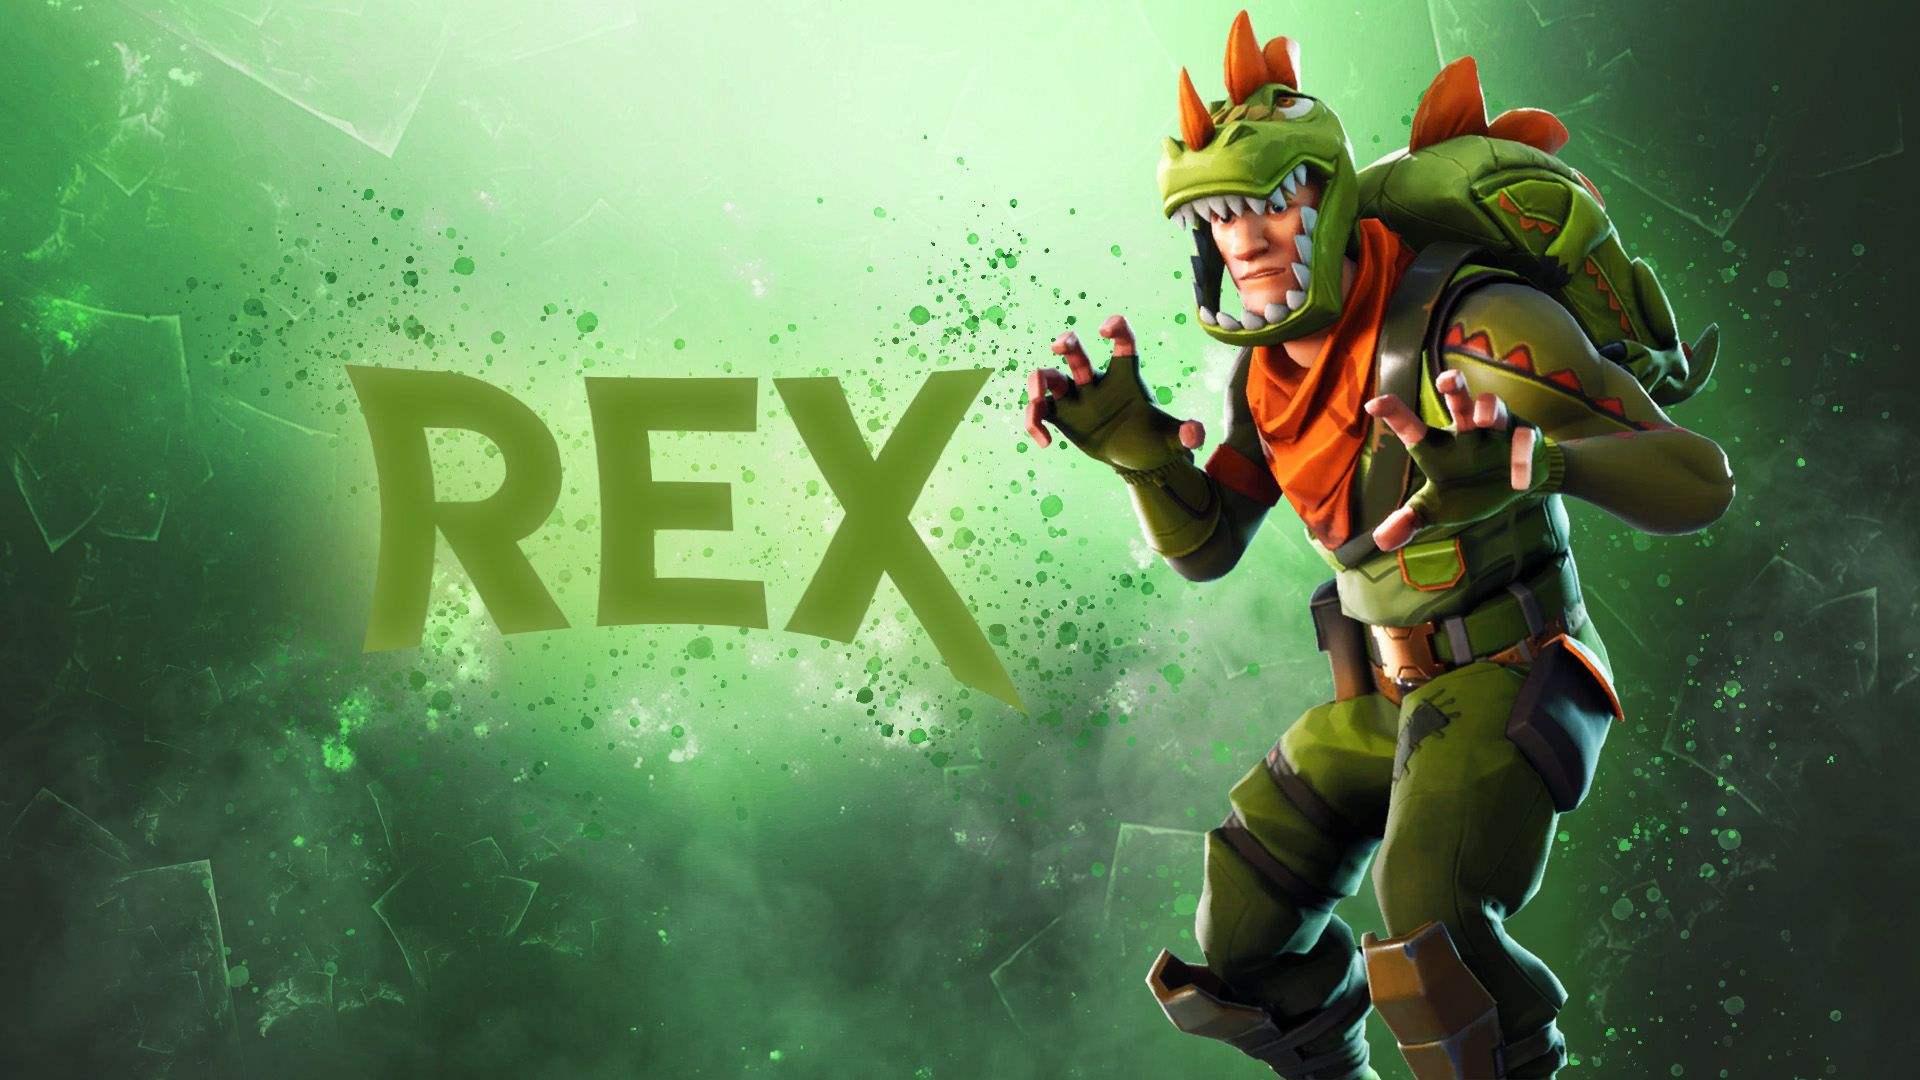 Fortnite Rex Wallpaper Wallpaper Free Download